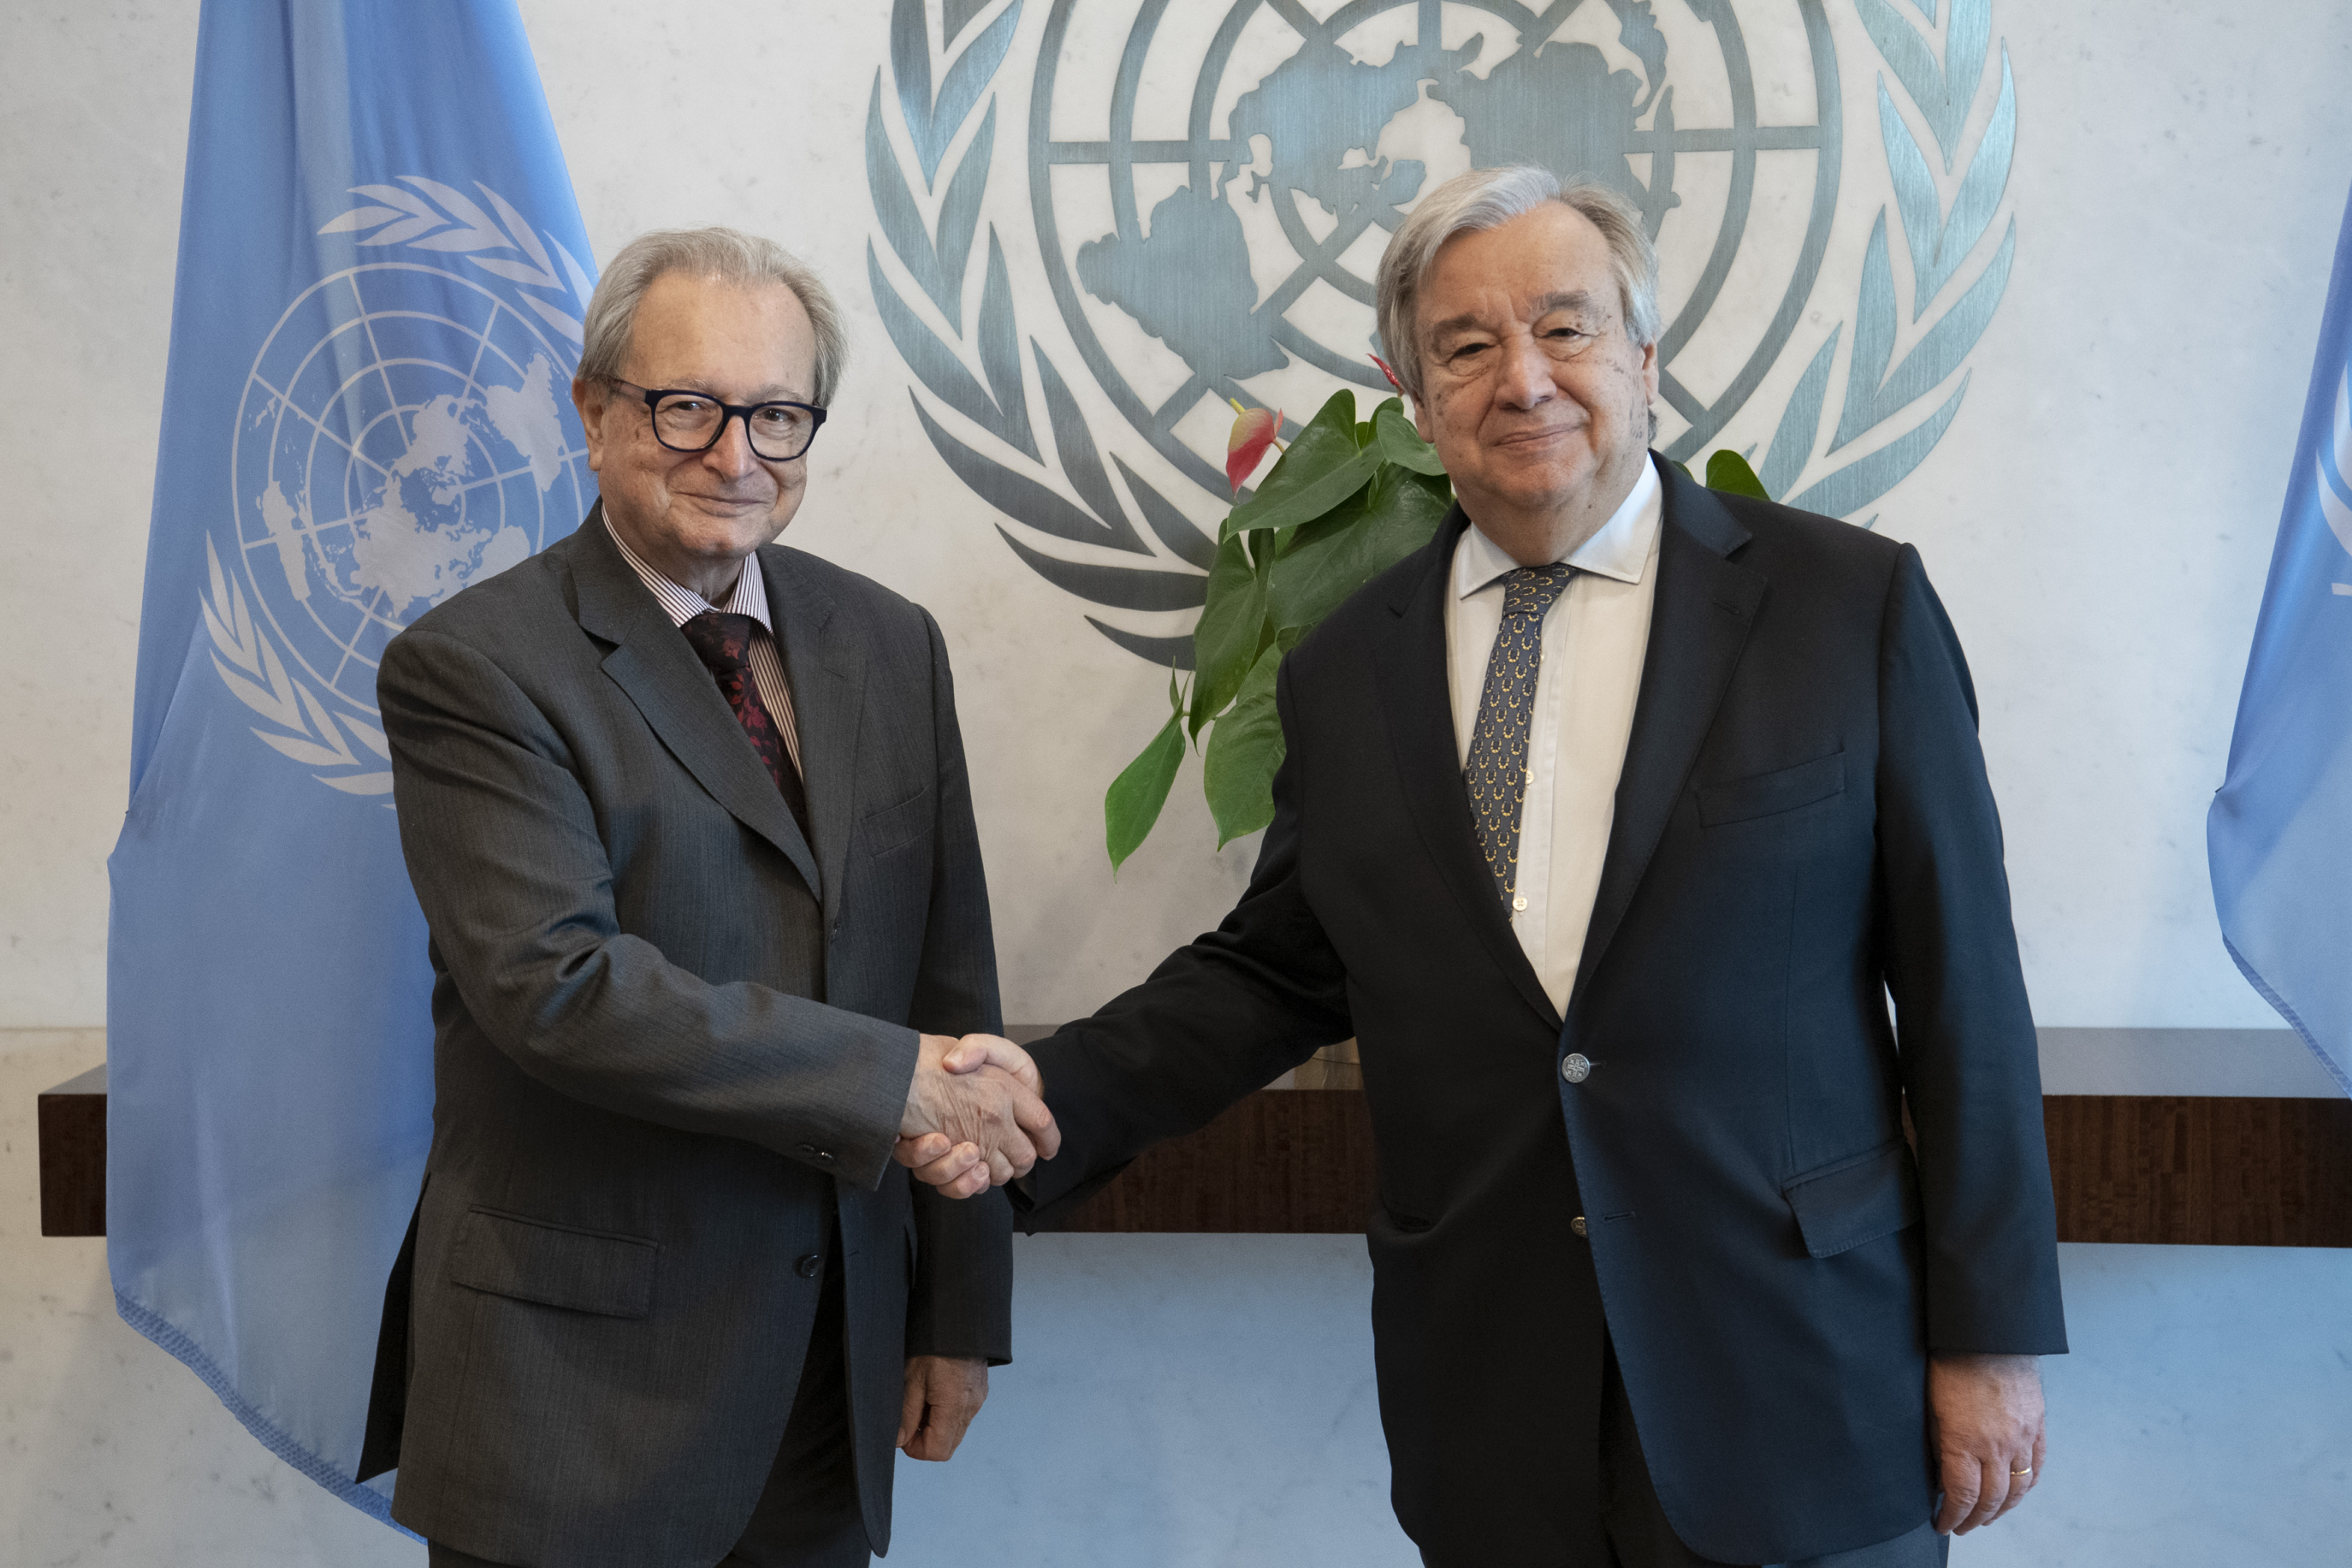 IRMCT President, Judge Carmel Agius (left), and United Nations Secretary-General António Guterres. UN Photo/Evan Schneider